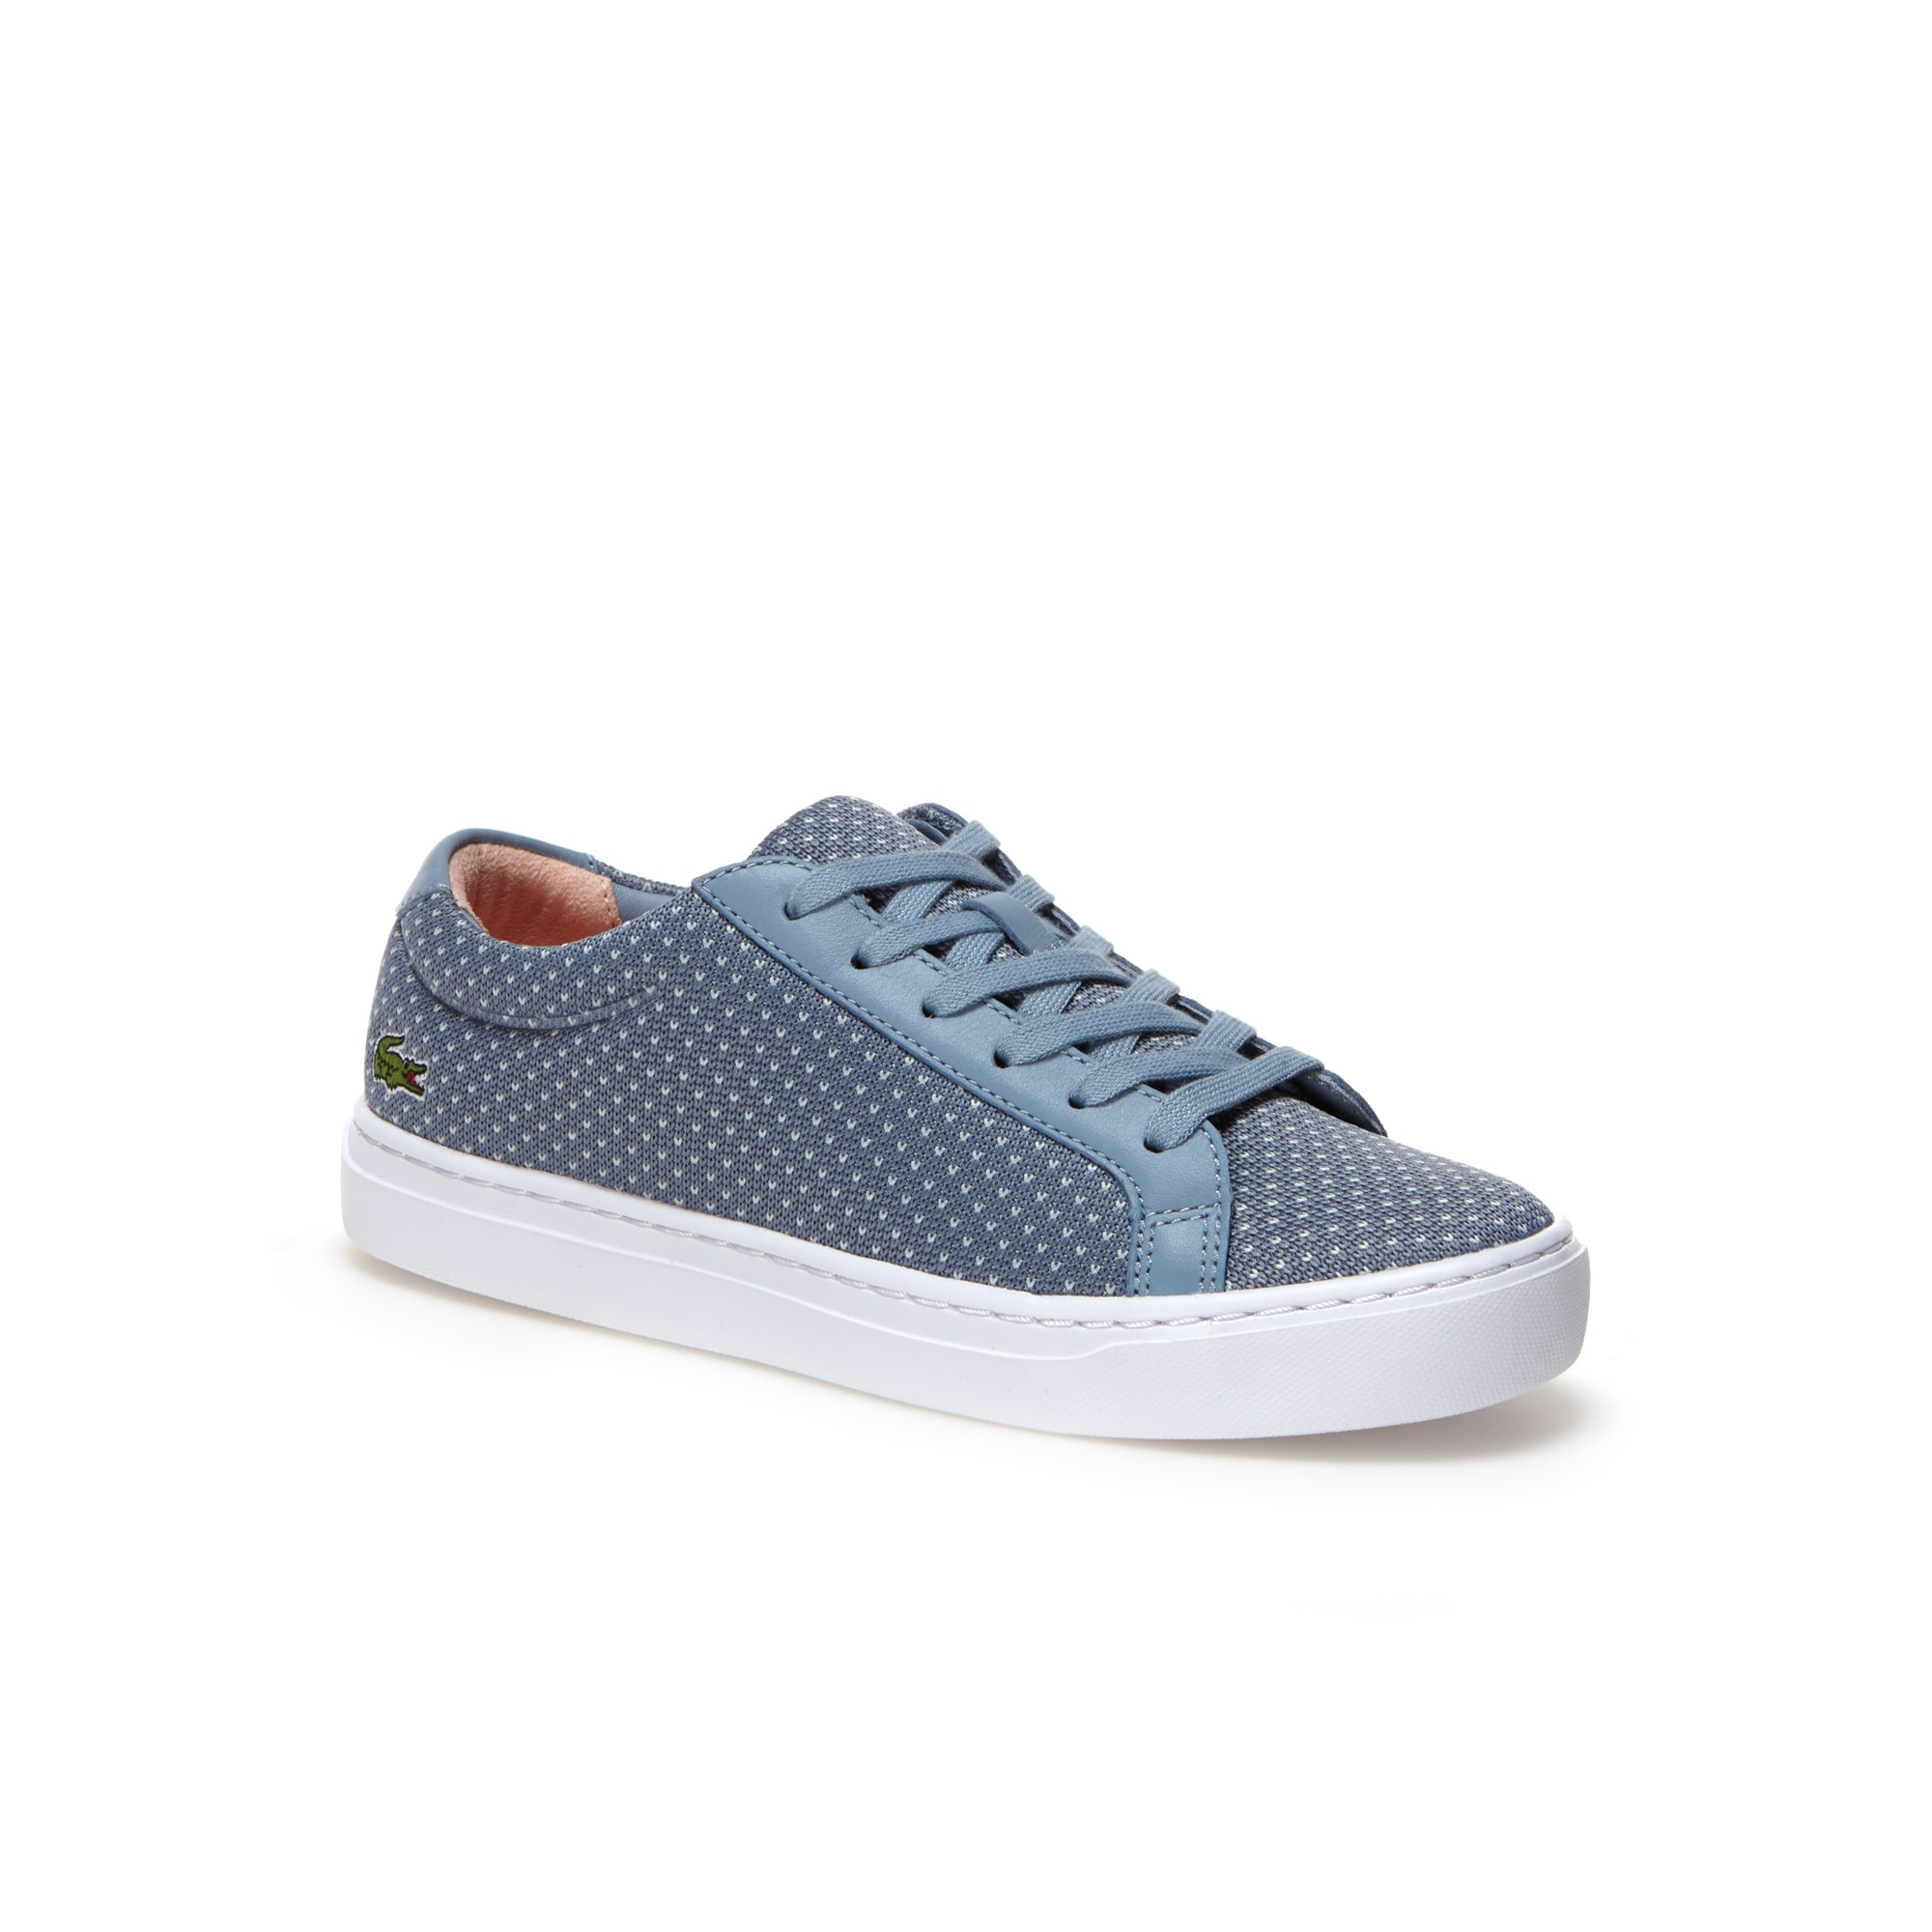 Damen-Sneakers L.12.12 LIGHTWEIGHT aus Stoff